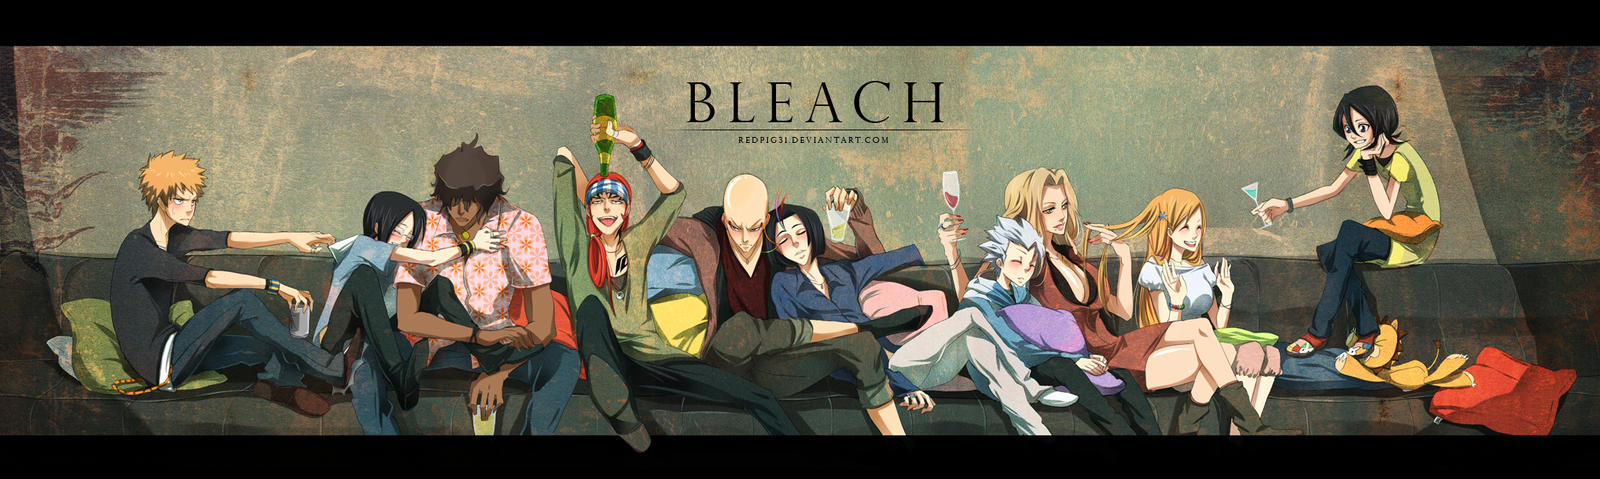 Bleach - Be Drunk by RedPig31